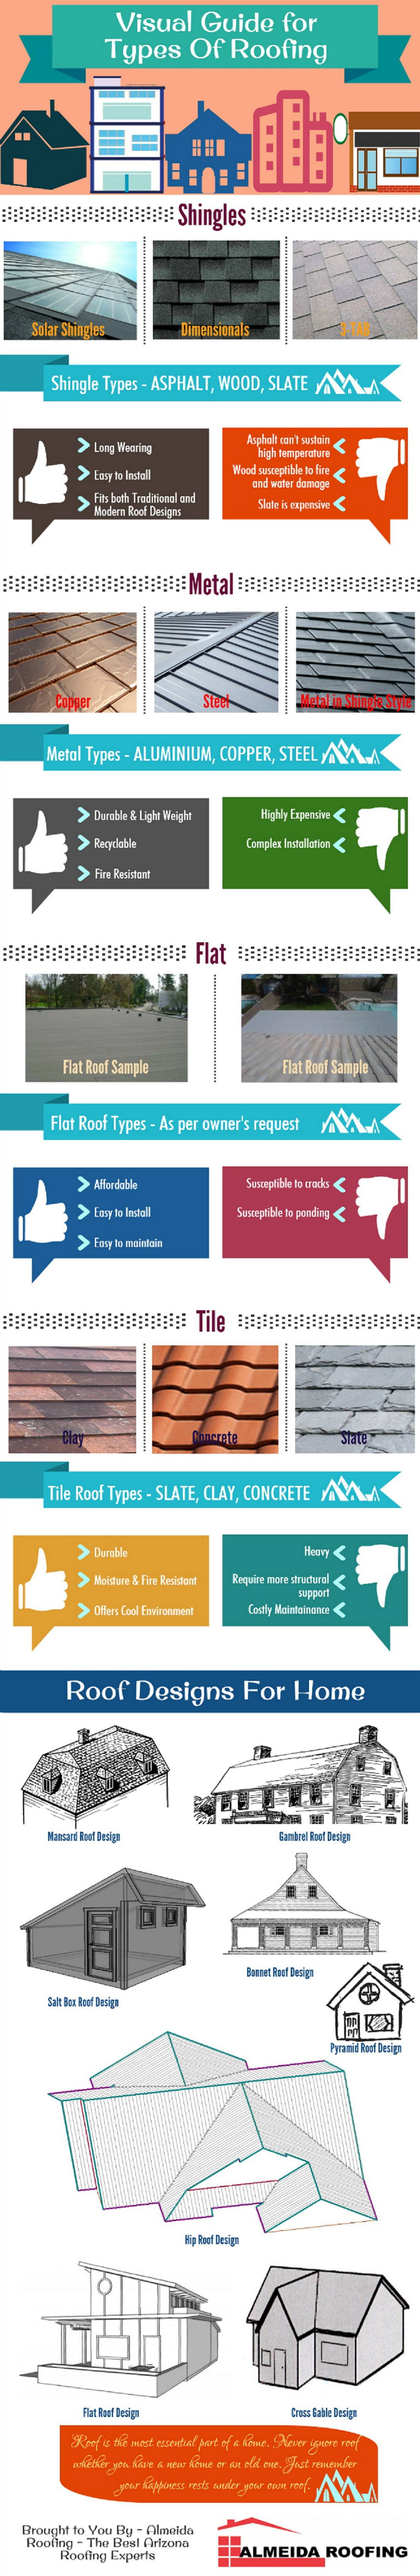 Your Happiness Rests Under Your Own Roof Watch This Visual Guide For Roof Types Roof Types Roofing Repair